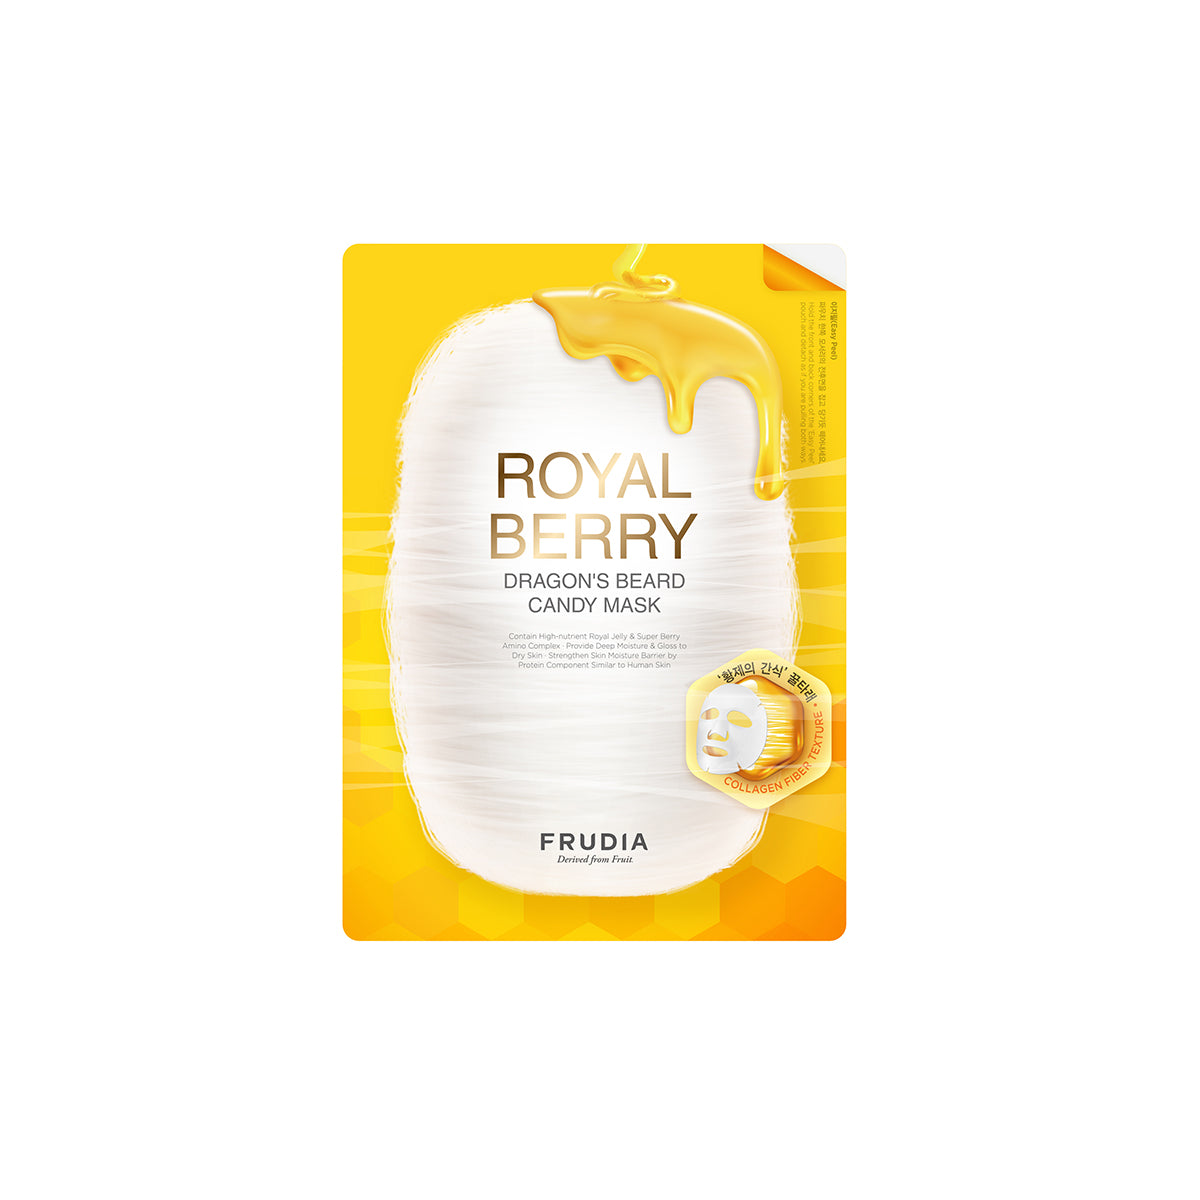 Frudia Royal Berry Dragon's Beard Candy Sheet Mask